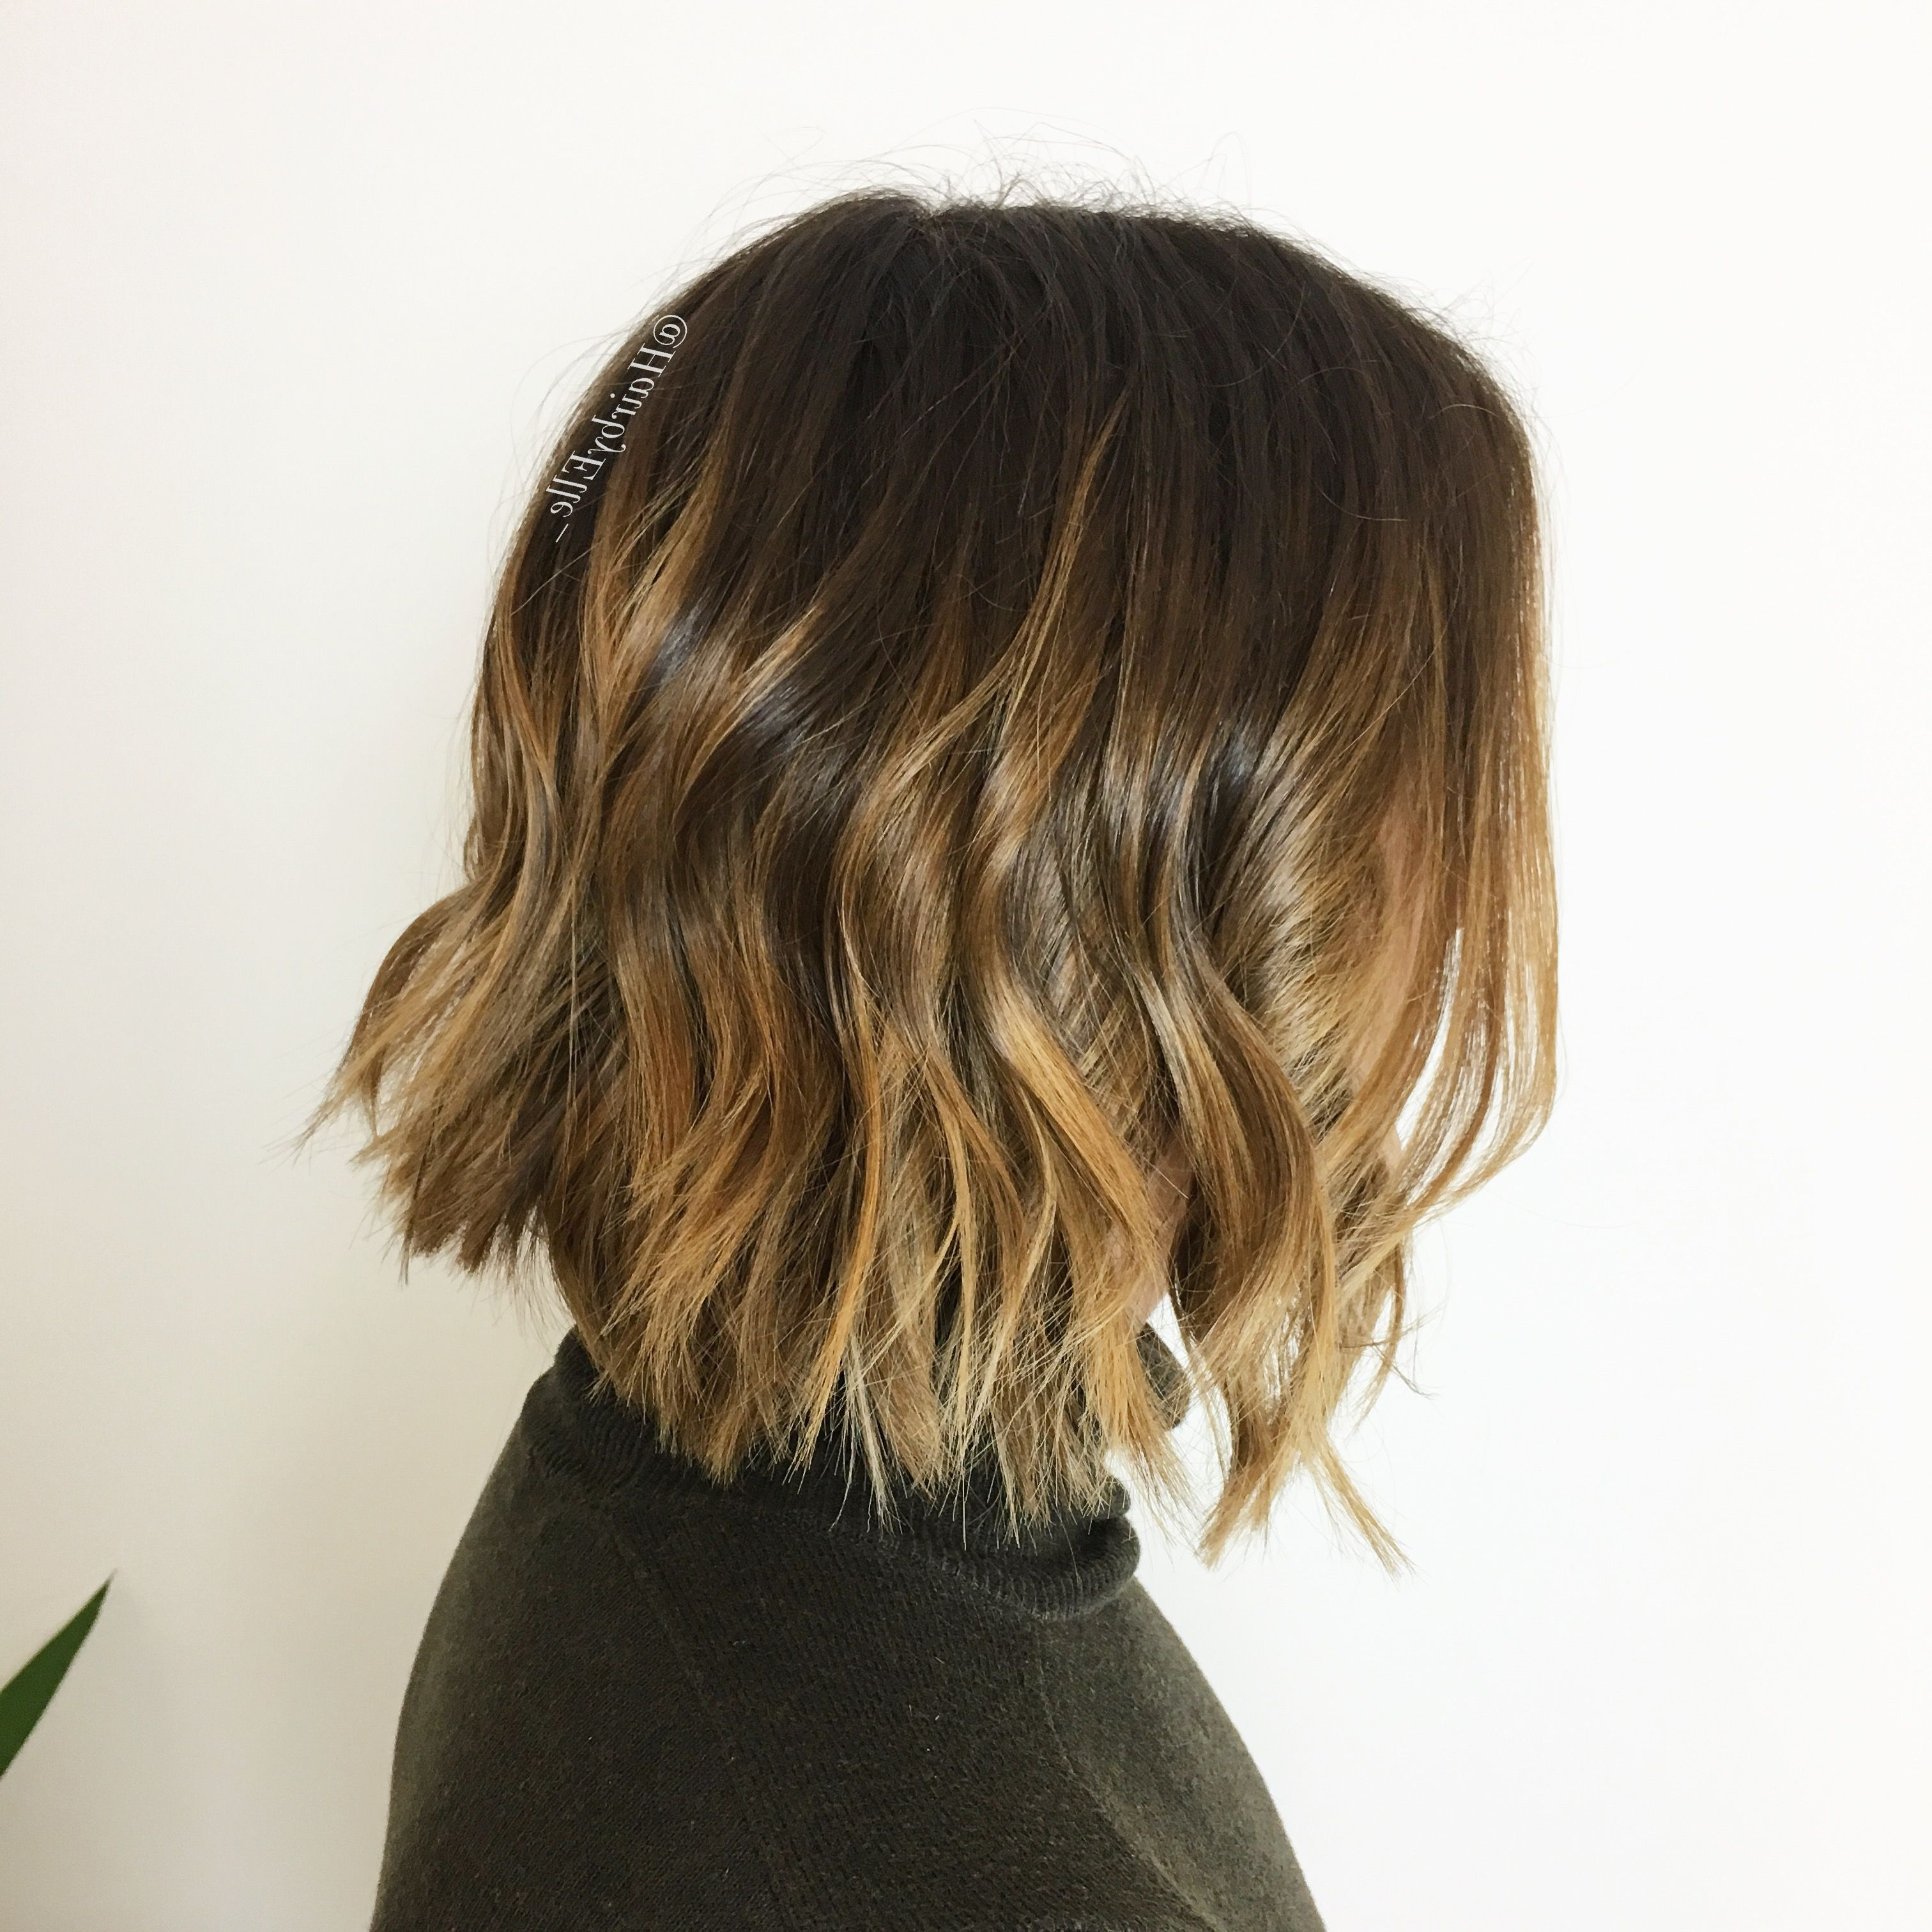 Famous Point Cut Bob Hairstyles With Caramel Balayage With Choppy Blunt Bob, Balayage Caramel Highlights With A Textured Wave (View 6 of 20)